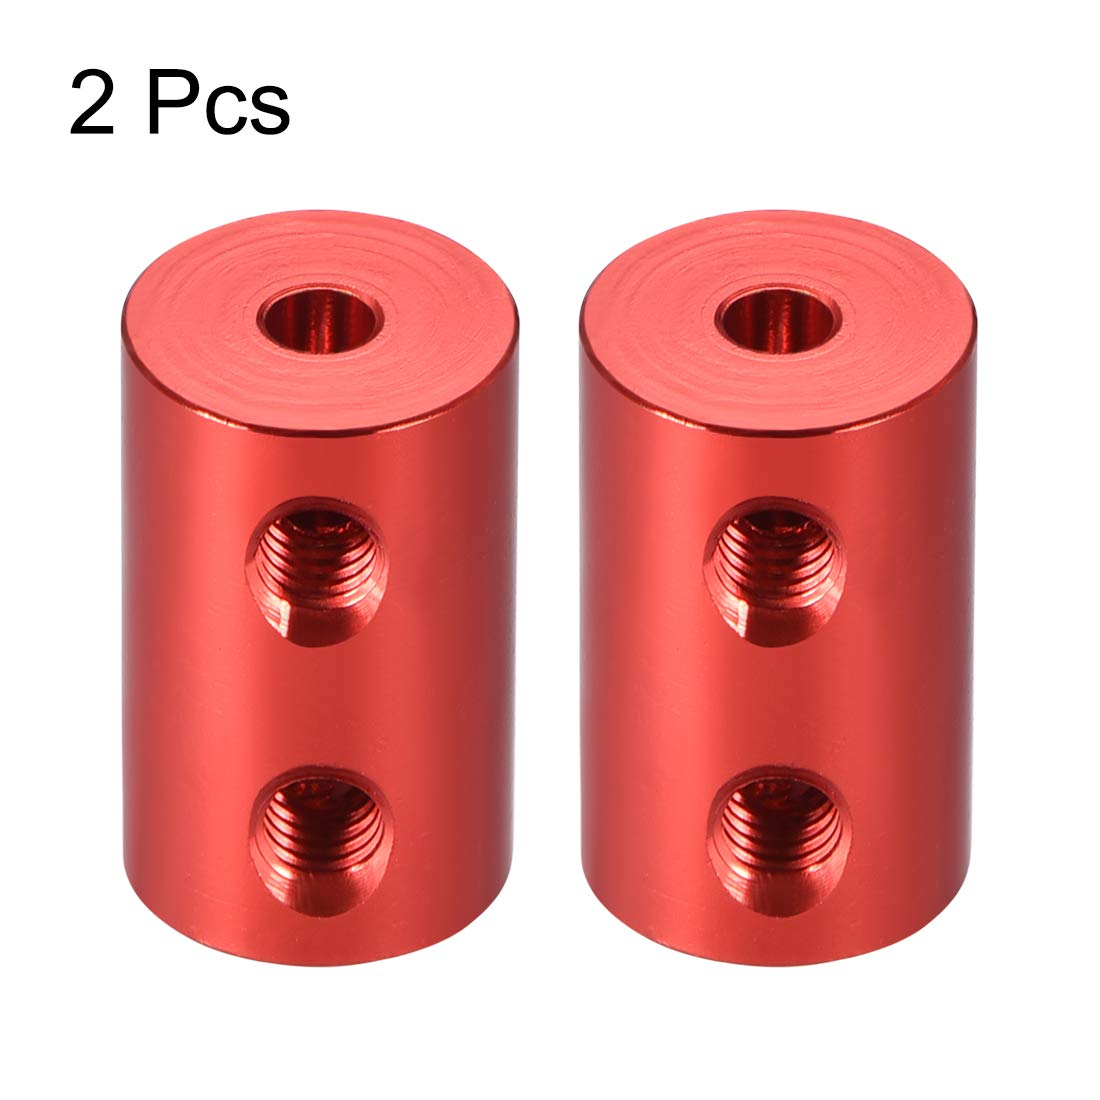 sourcing map Shaft Coupling 6mm to 6mm Bore L22xD14 Robot Motor Wheel Rigid Coupler Connector Silver Tone 2 Pcs